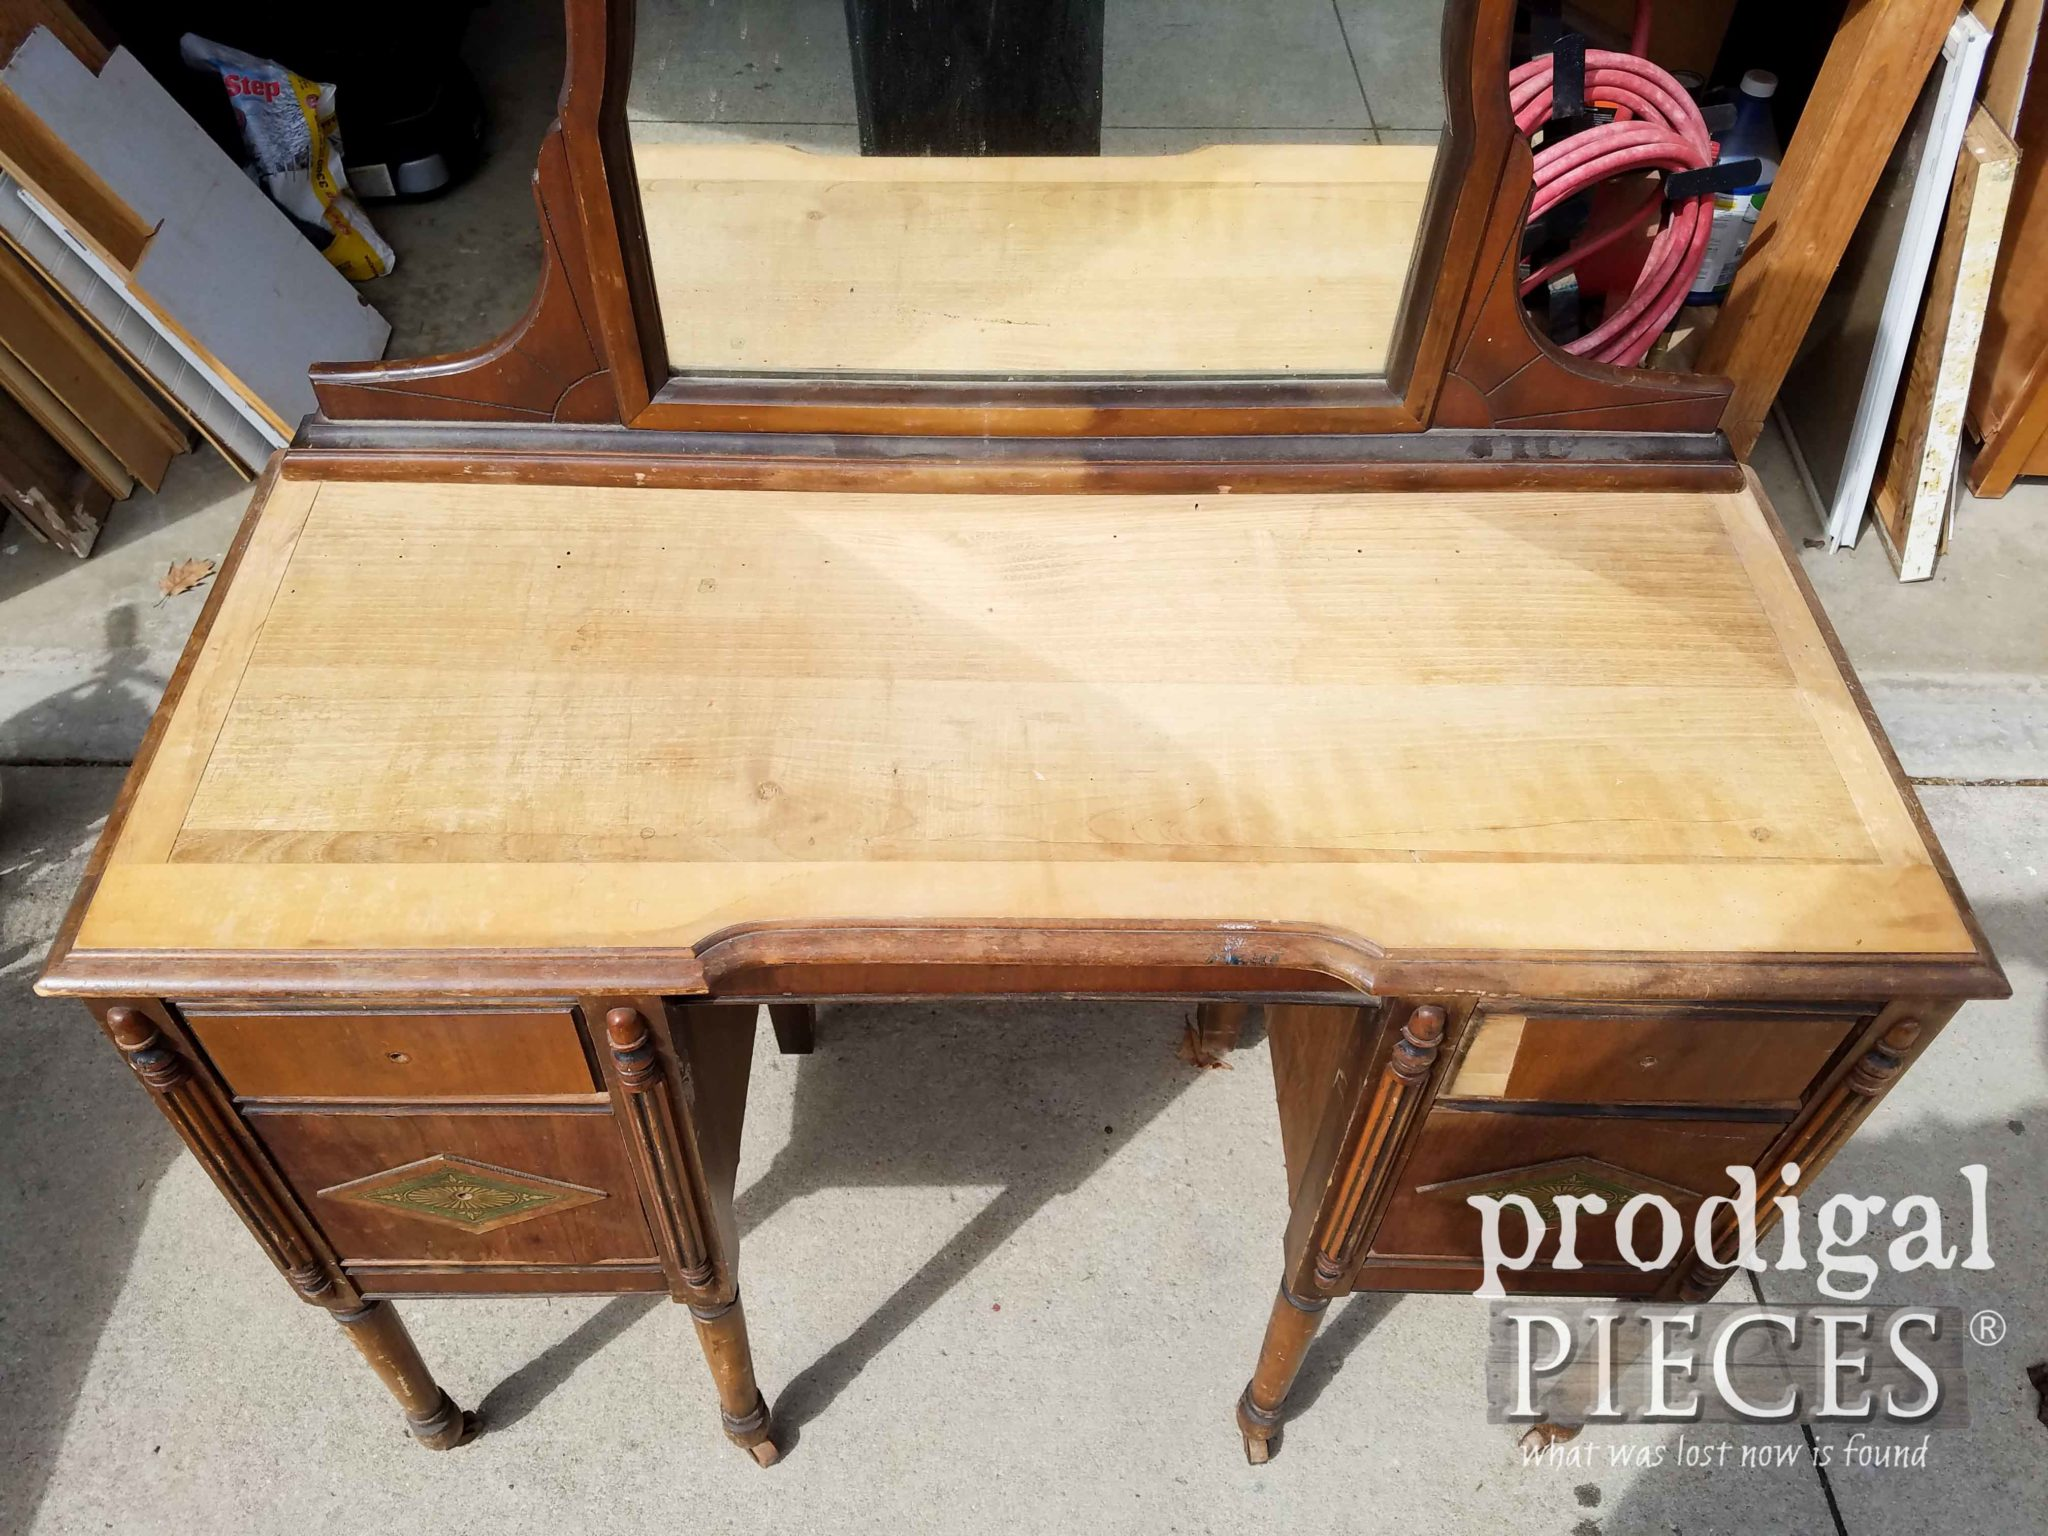 Damaged Antique Vanity Top | prodigalpieces.com